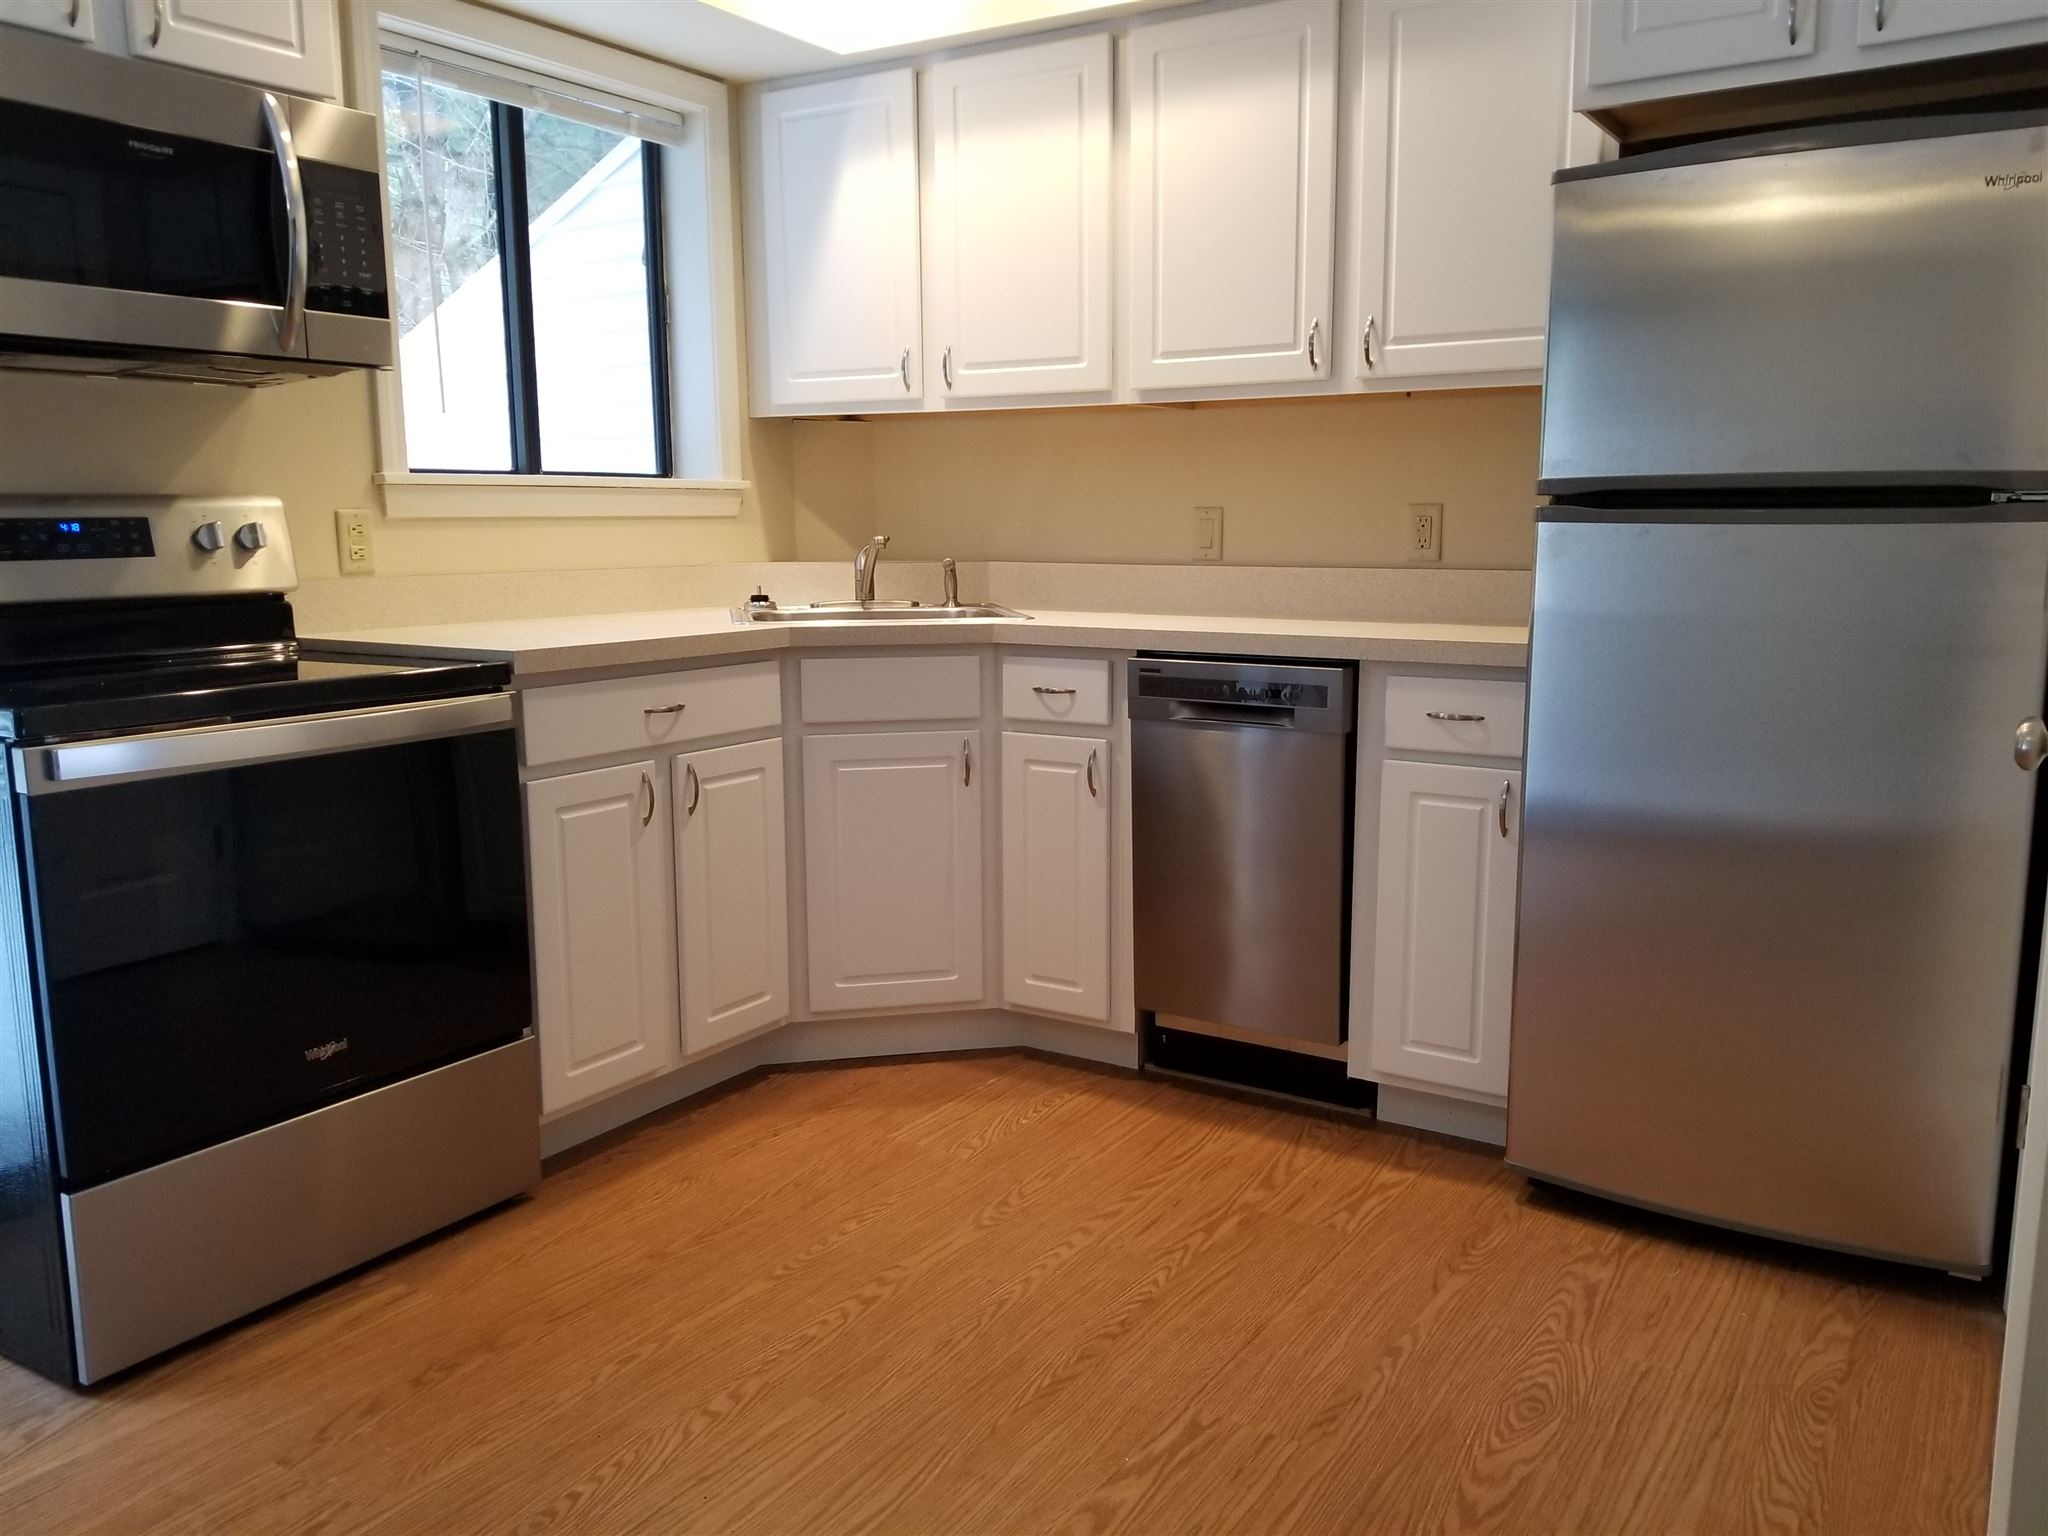 New Cabinetry, Appliances